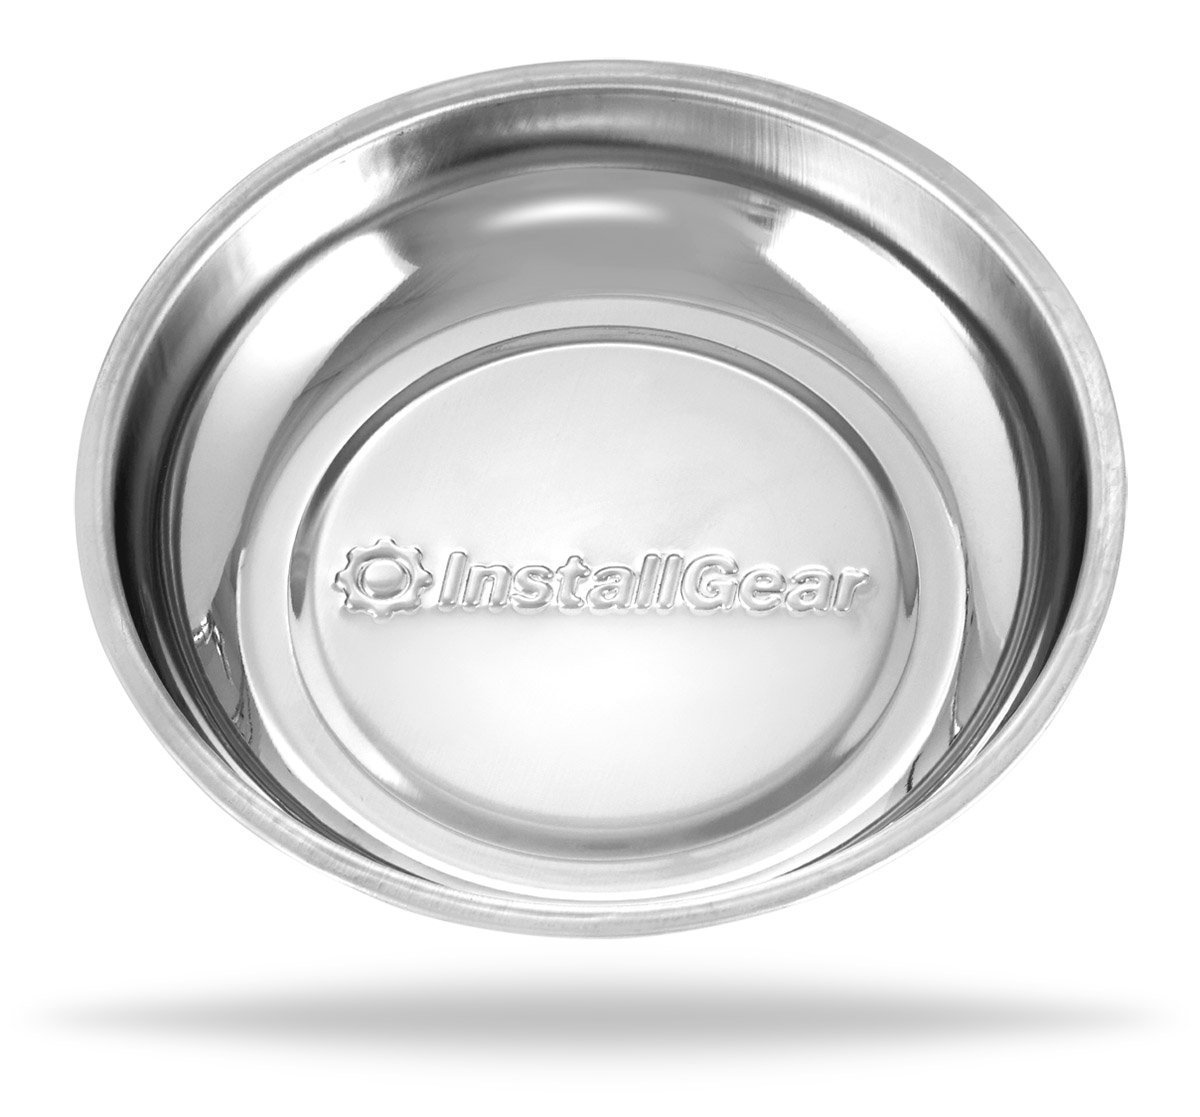 InstallGear Magnetic Parts Tray 4 Stainless Steel